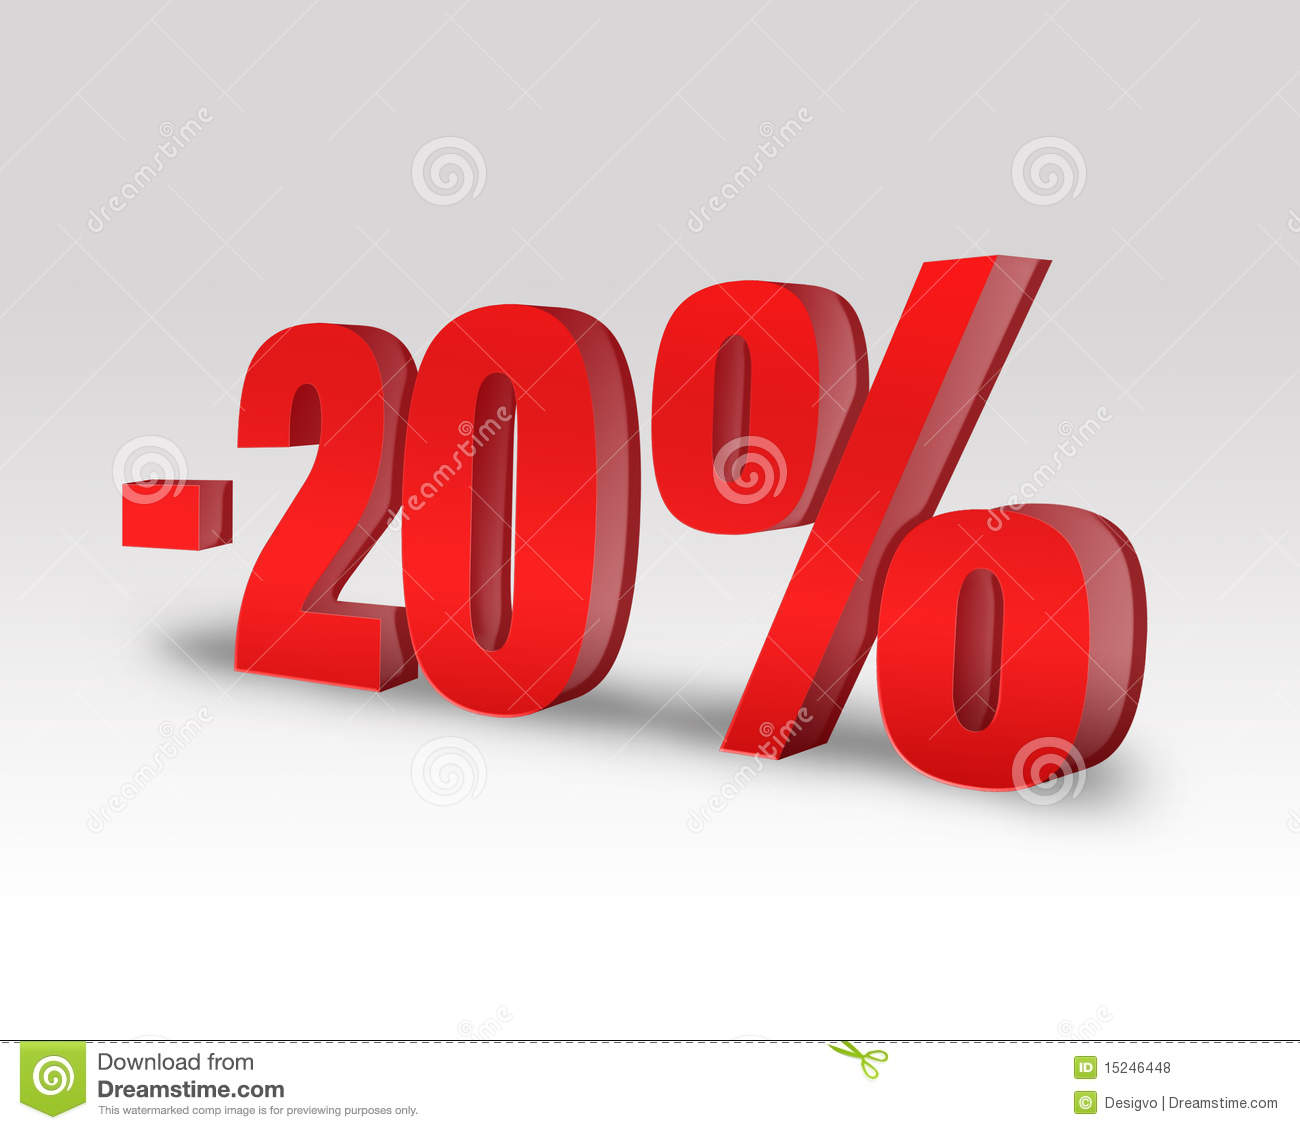 20 discount offer stock illustration image of corporate for Boden 20 rabatt